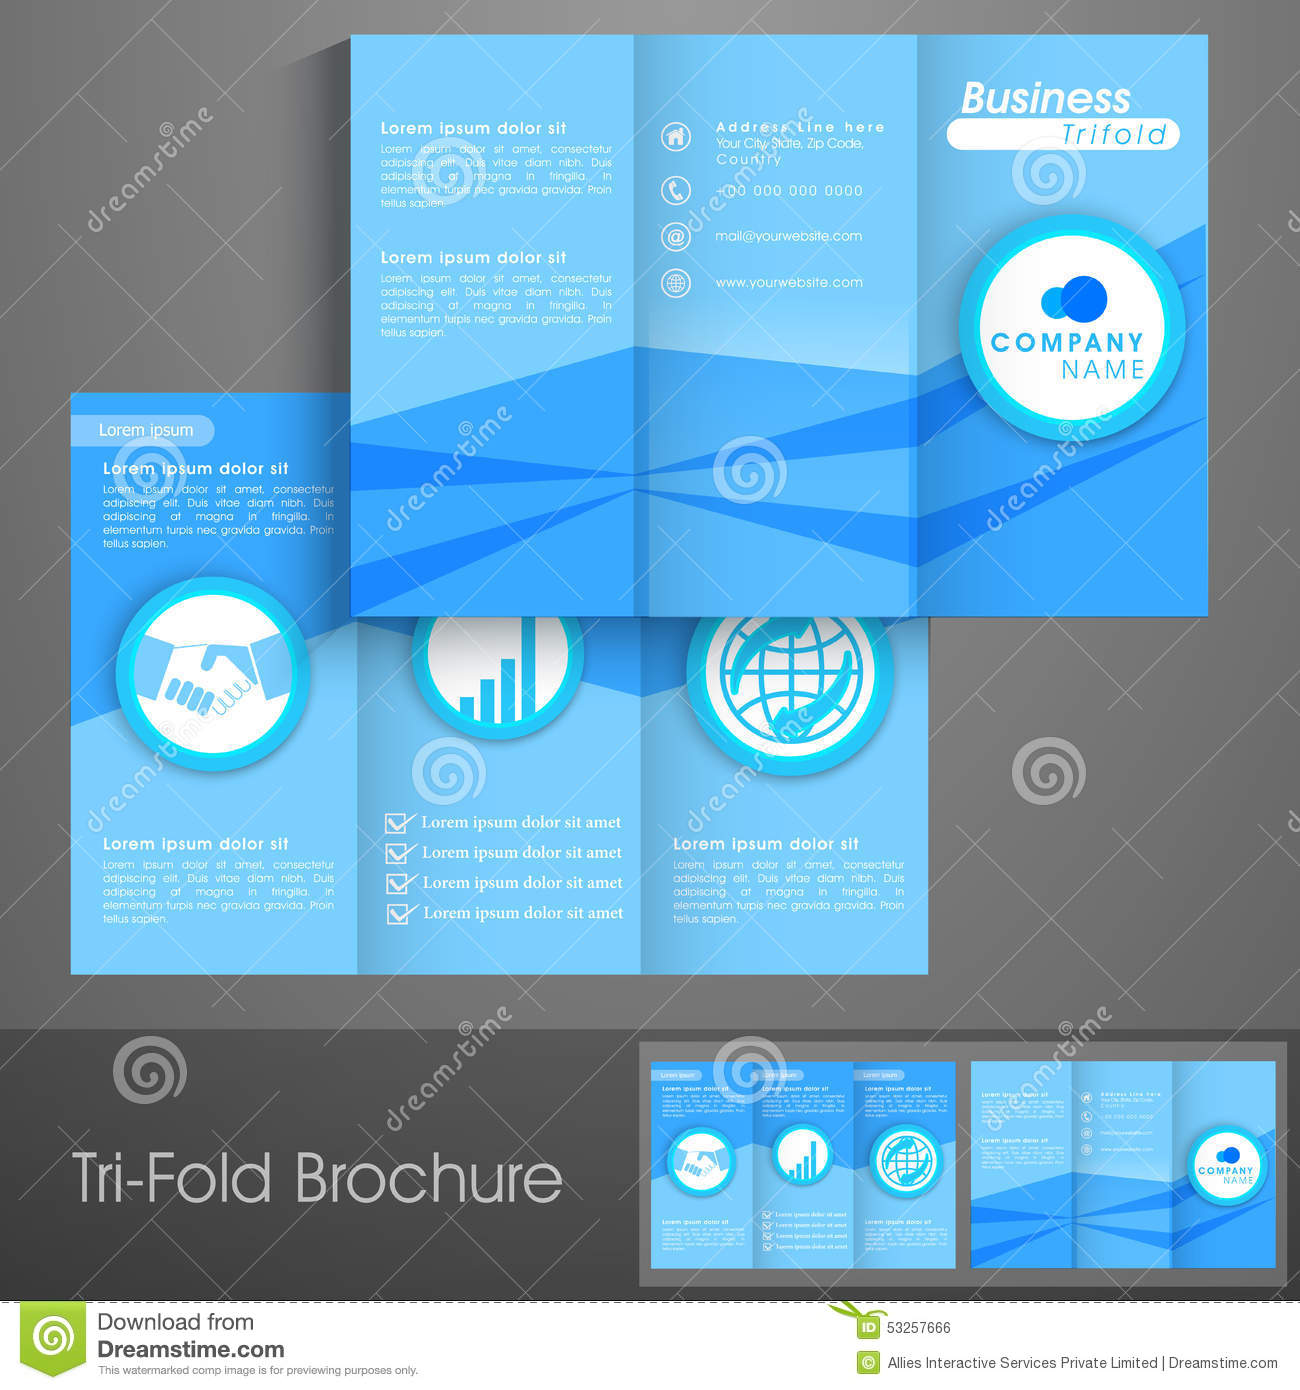 booklet brochure template - professional trifold brochure template or flyer for